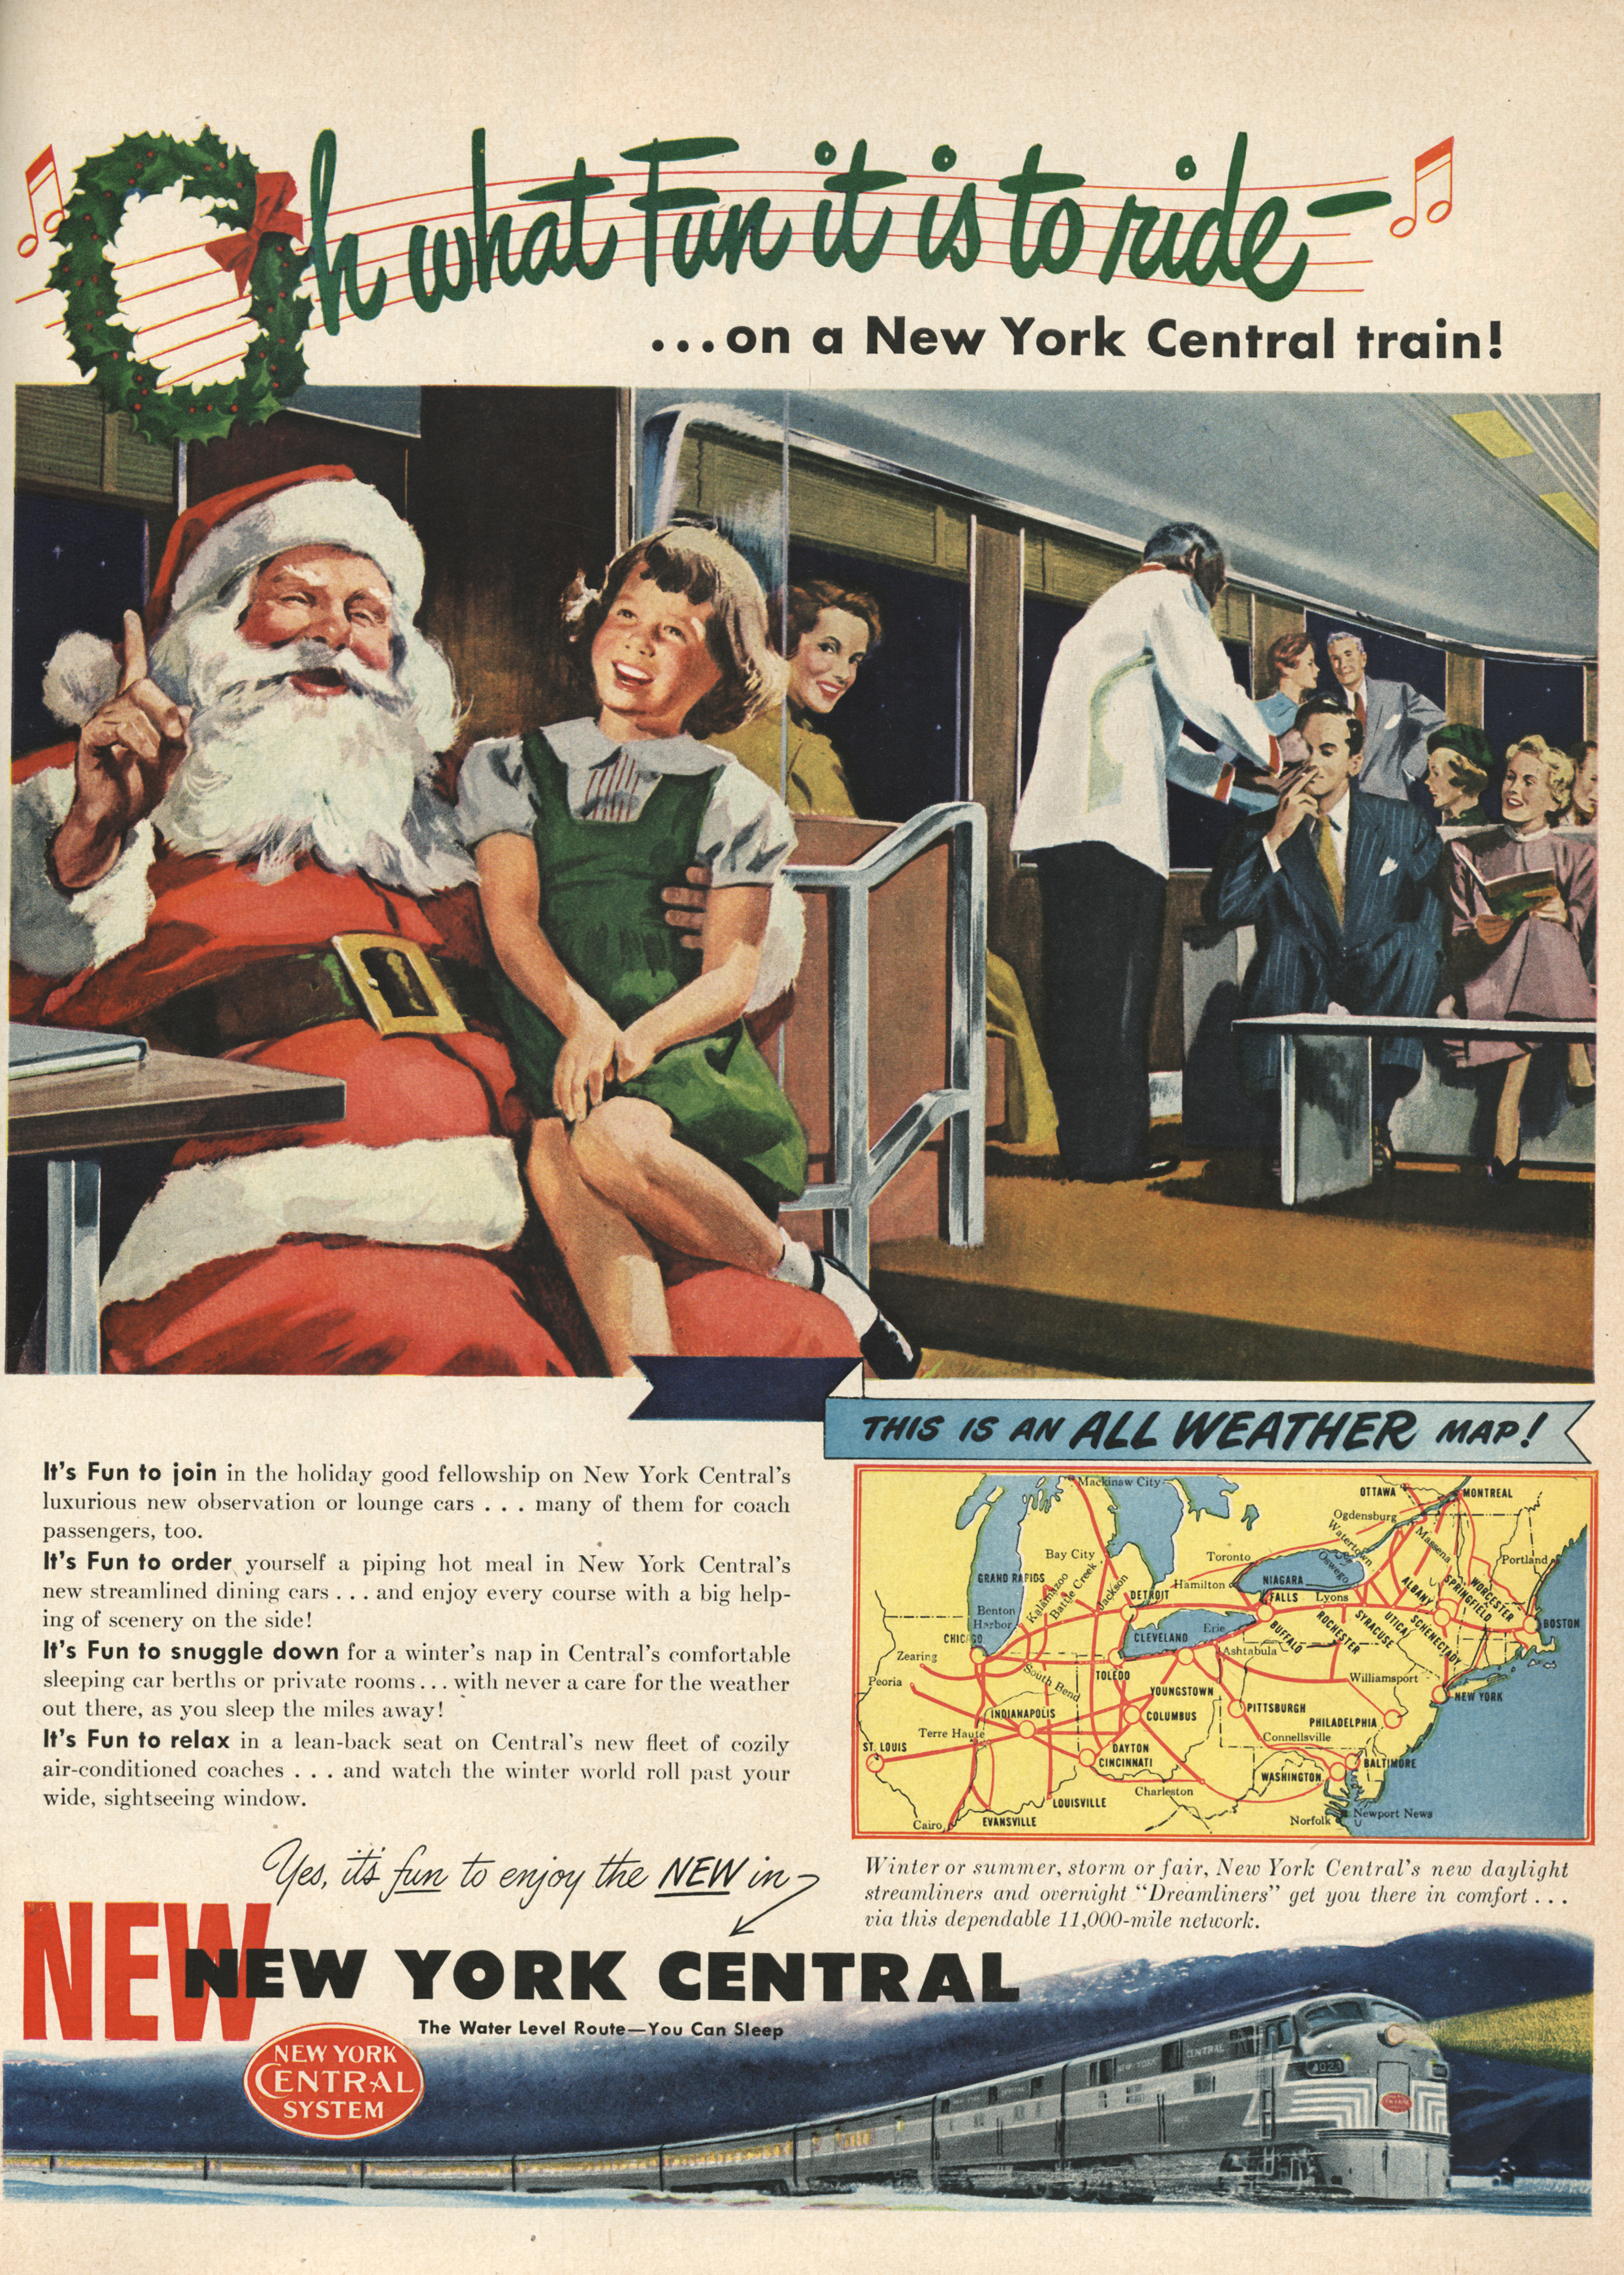 New York Central Railroad - published in Life - December 20, 1948